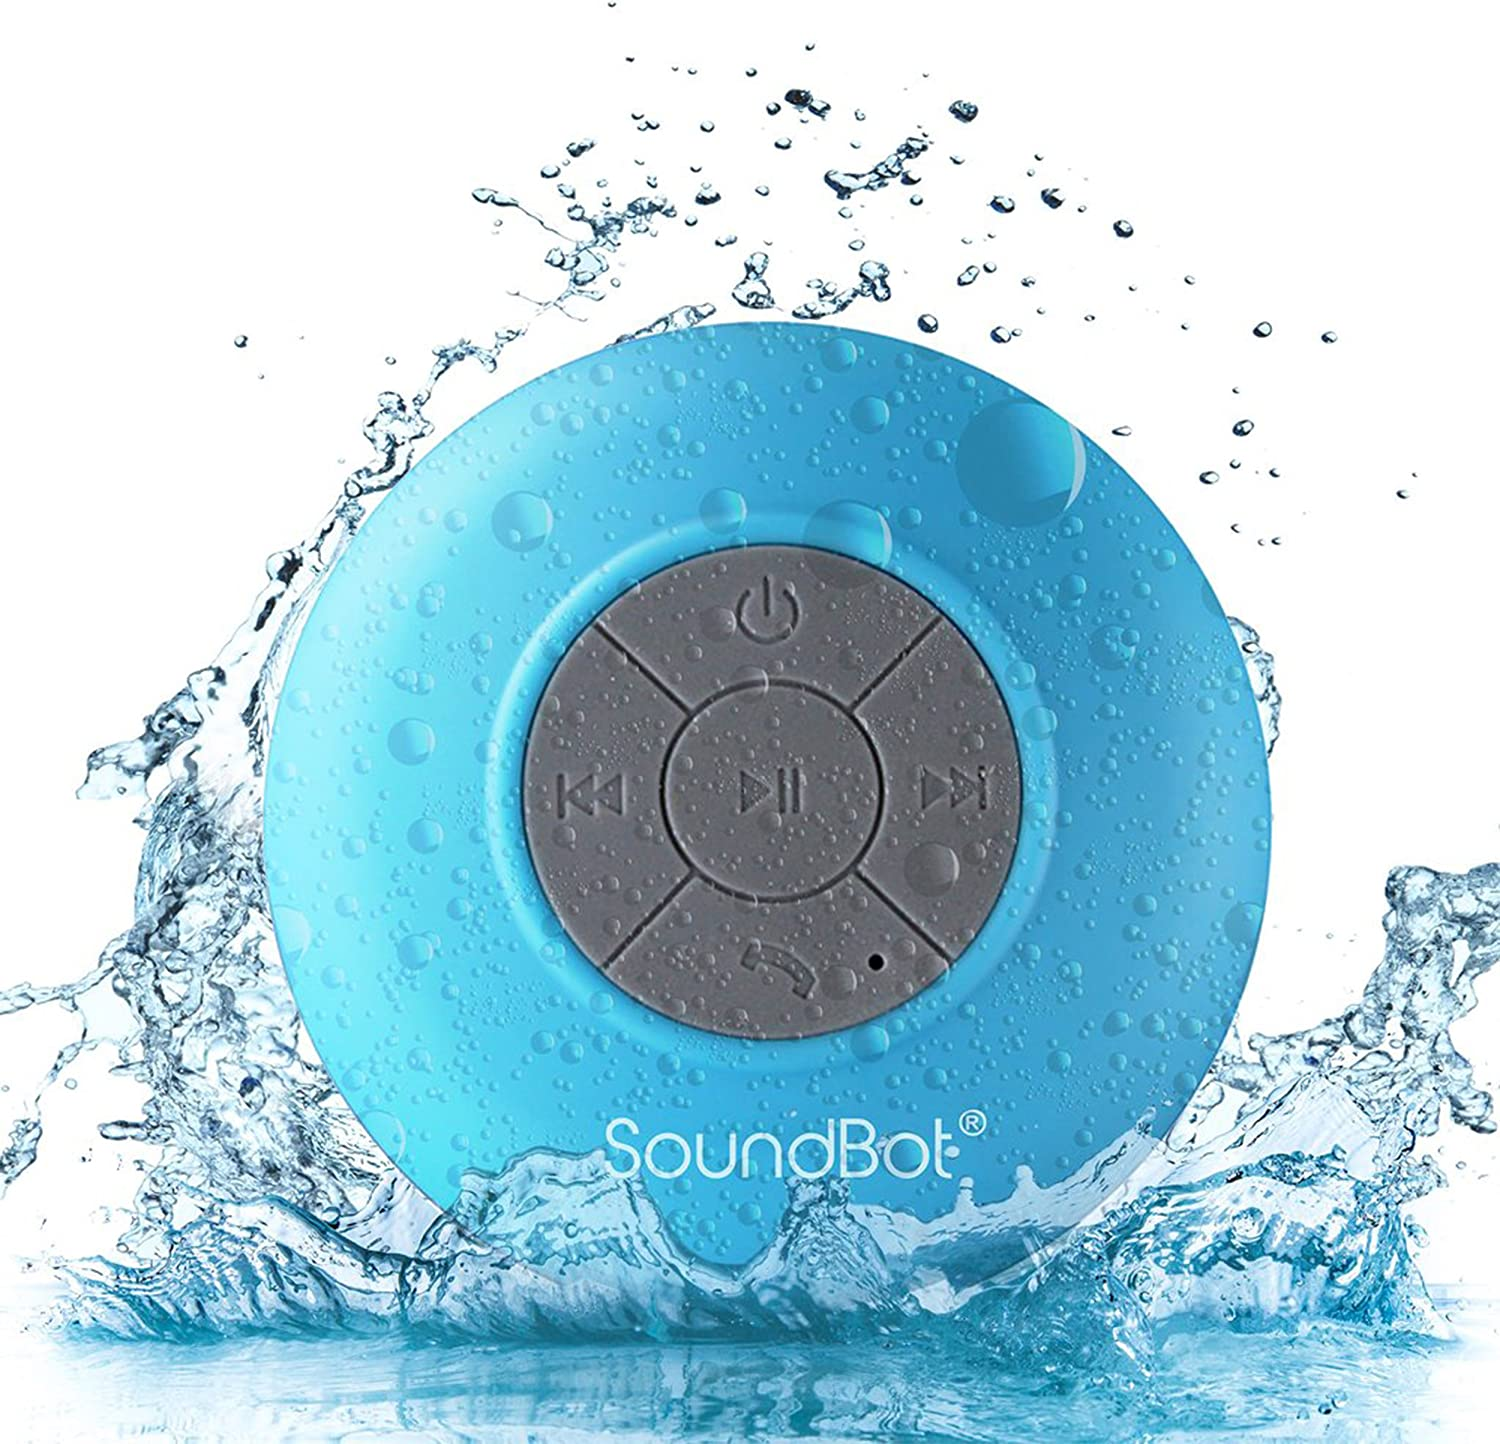 SoundBot SB8 HD Water Resistant Bluetooth 8.8 Shower Speaker, Handsfree  Portable Speakerphone with Built-in Mic, 8hrs of playtime, Control Buttons